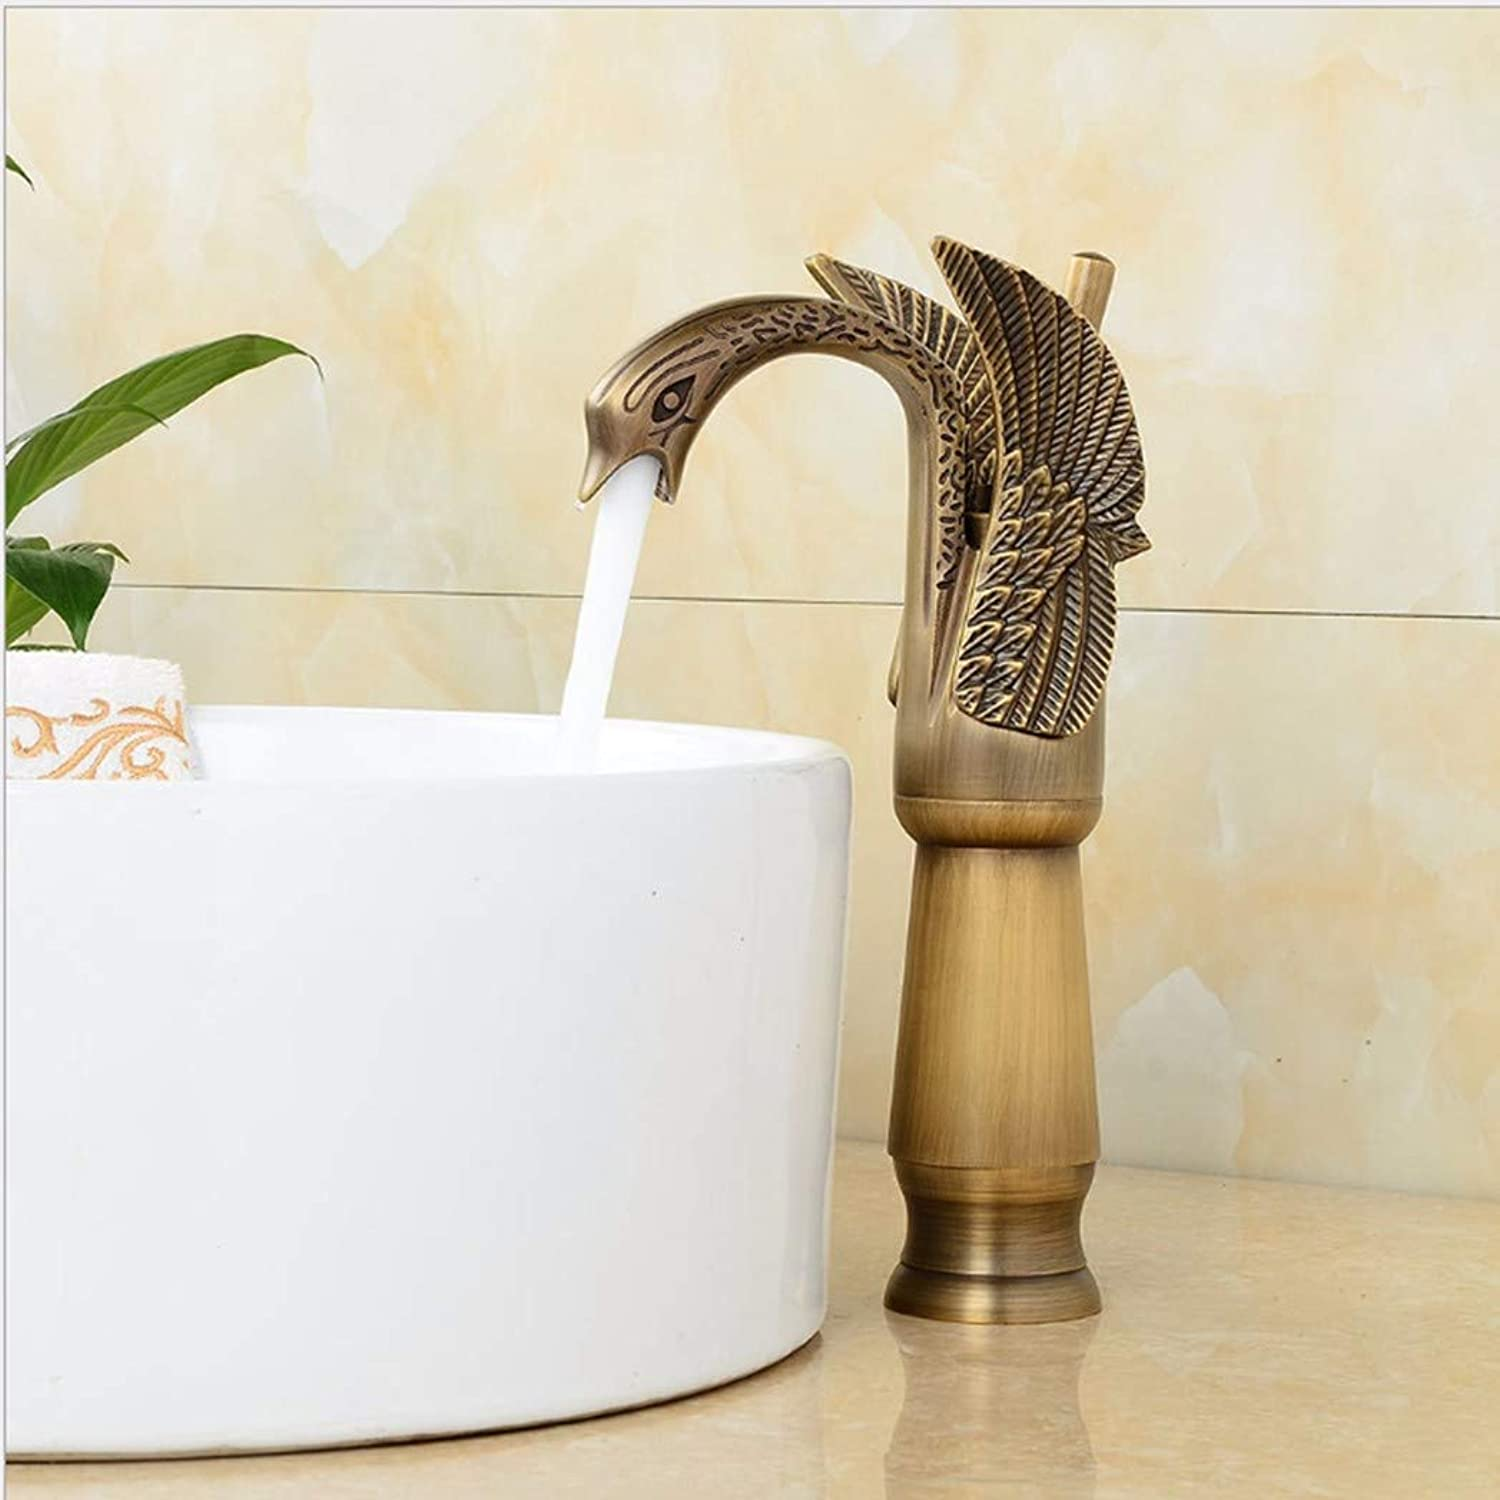 PatTheTap redatable Faucet Retro Metal Copper Used Kitchen Bathroom Washbasin Hot and Cold Dual Mode